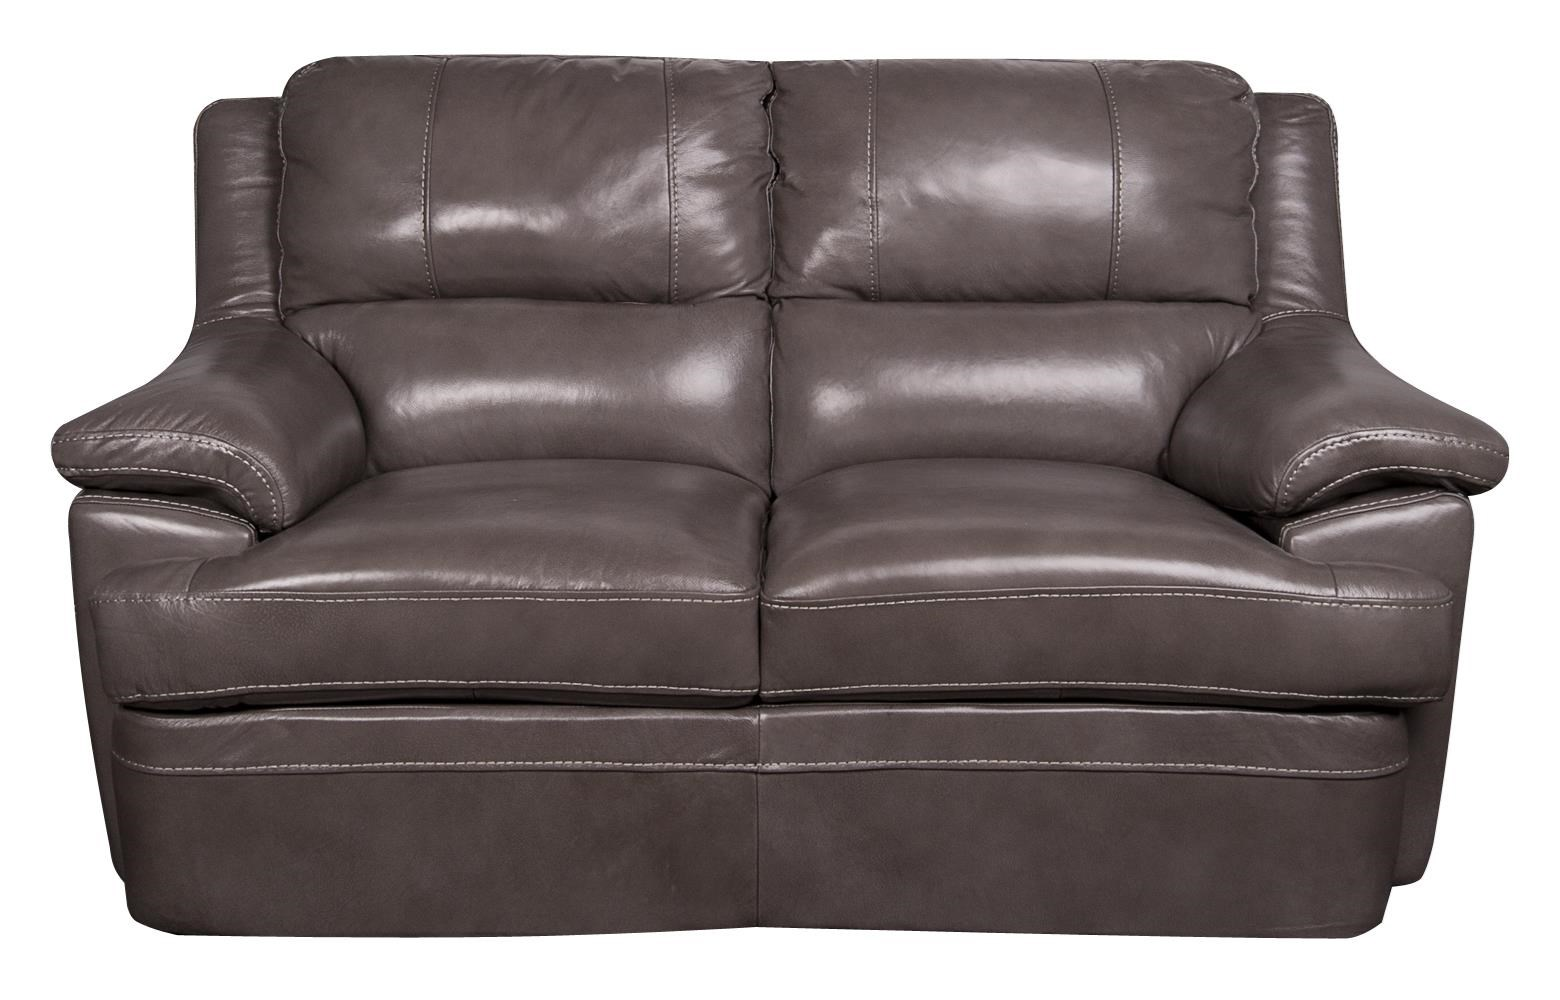 Morris Home Furnishings Zane Zane Leather-Match* Loveseat - Item Number: 435911247